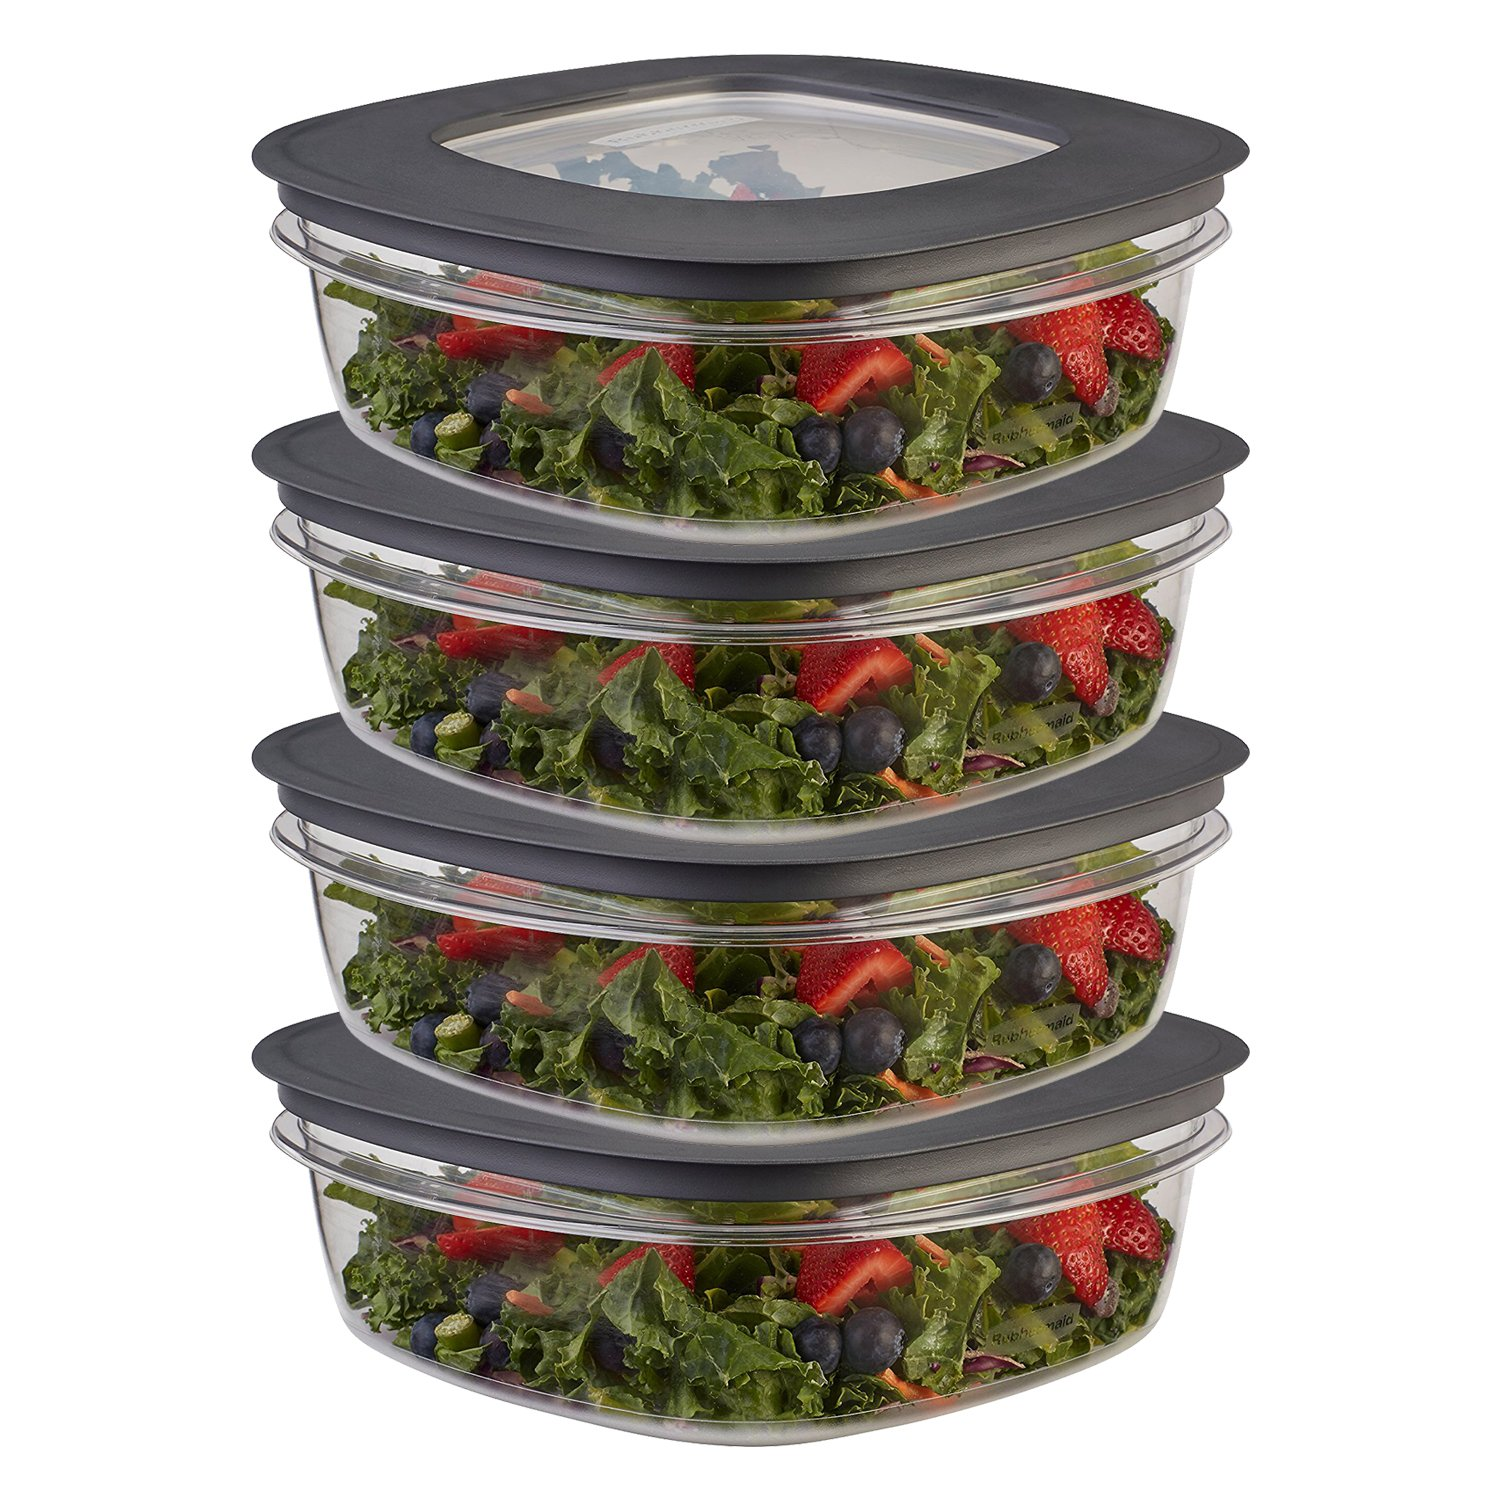 Rubbermaid (8-Piece) 9-Cup Plastic Food Storage Container Set BPA-Free Airtight Lids Meal Prep Bowls